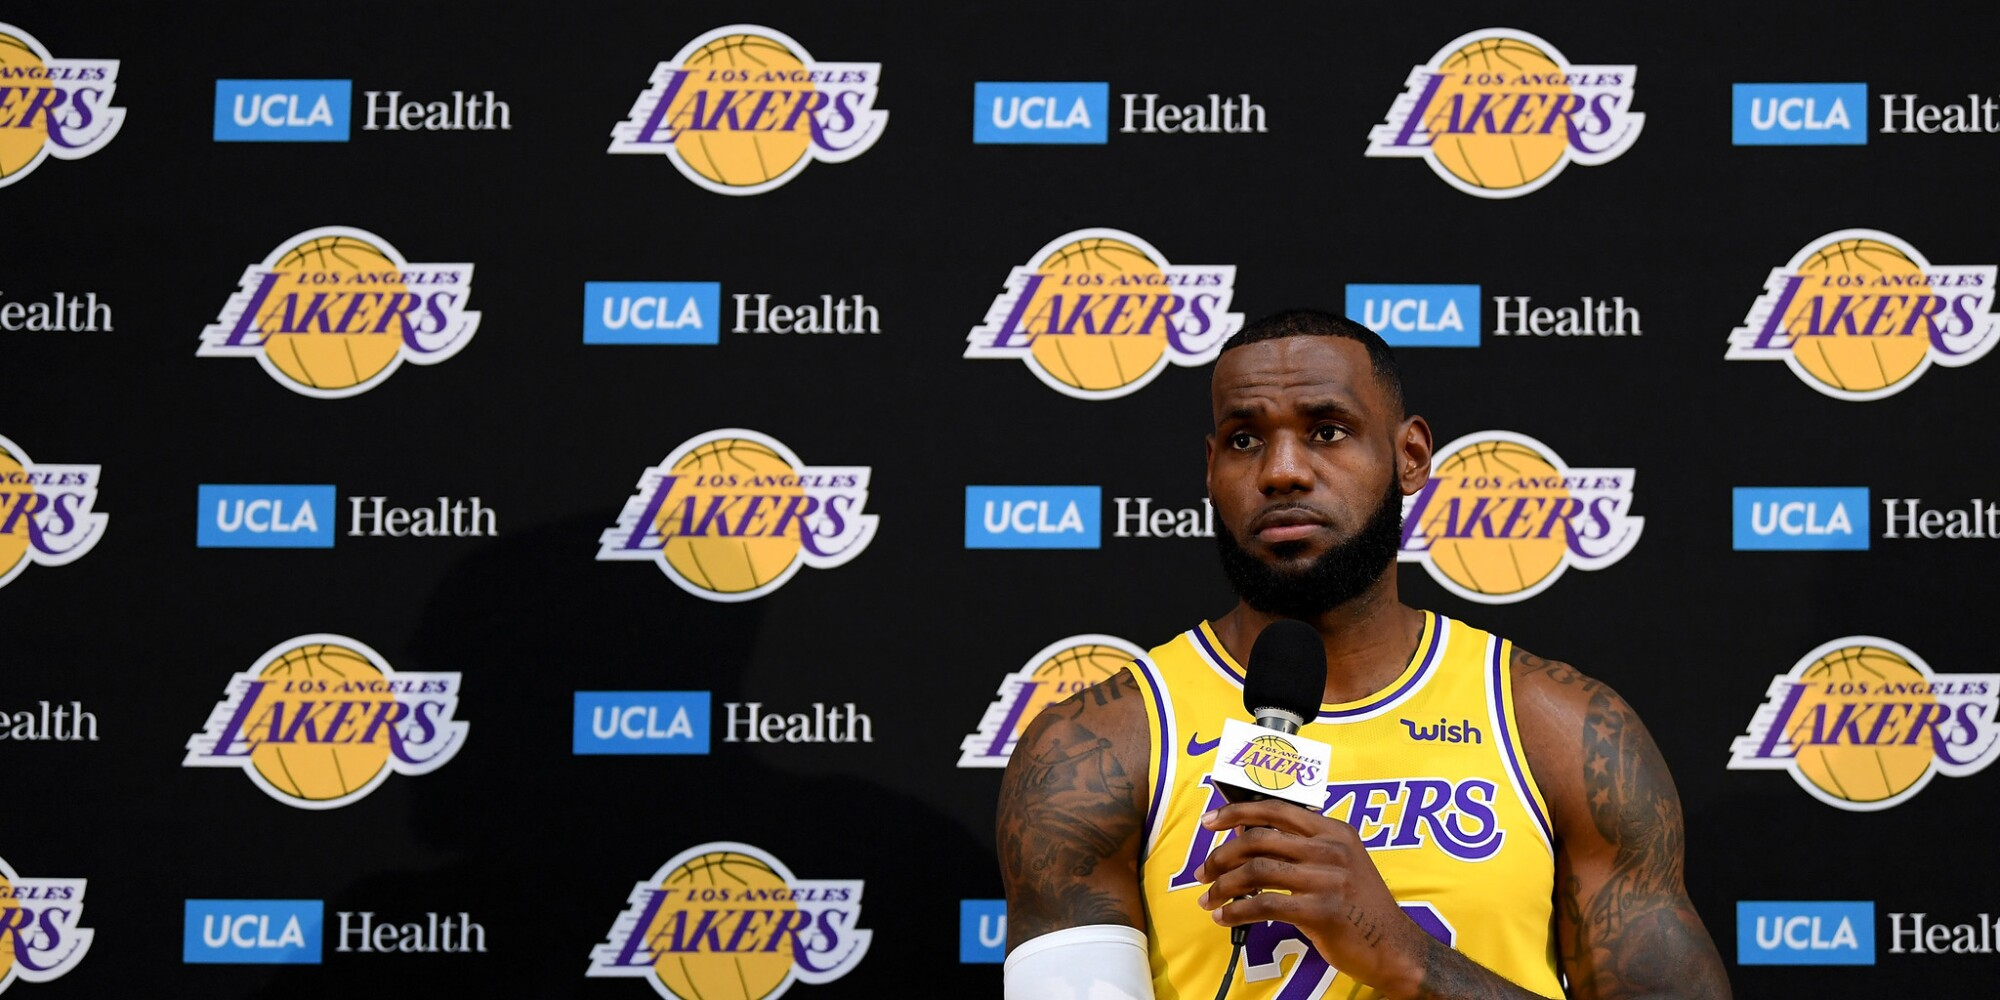 Live coverage: Lakers fall in season opener to Trail Blazers 128-119